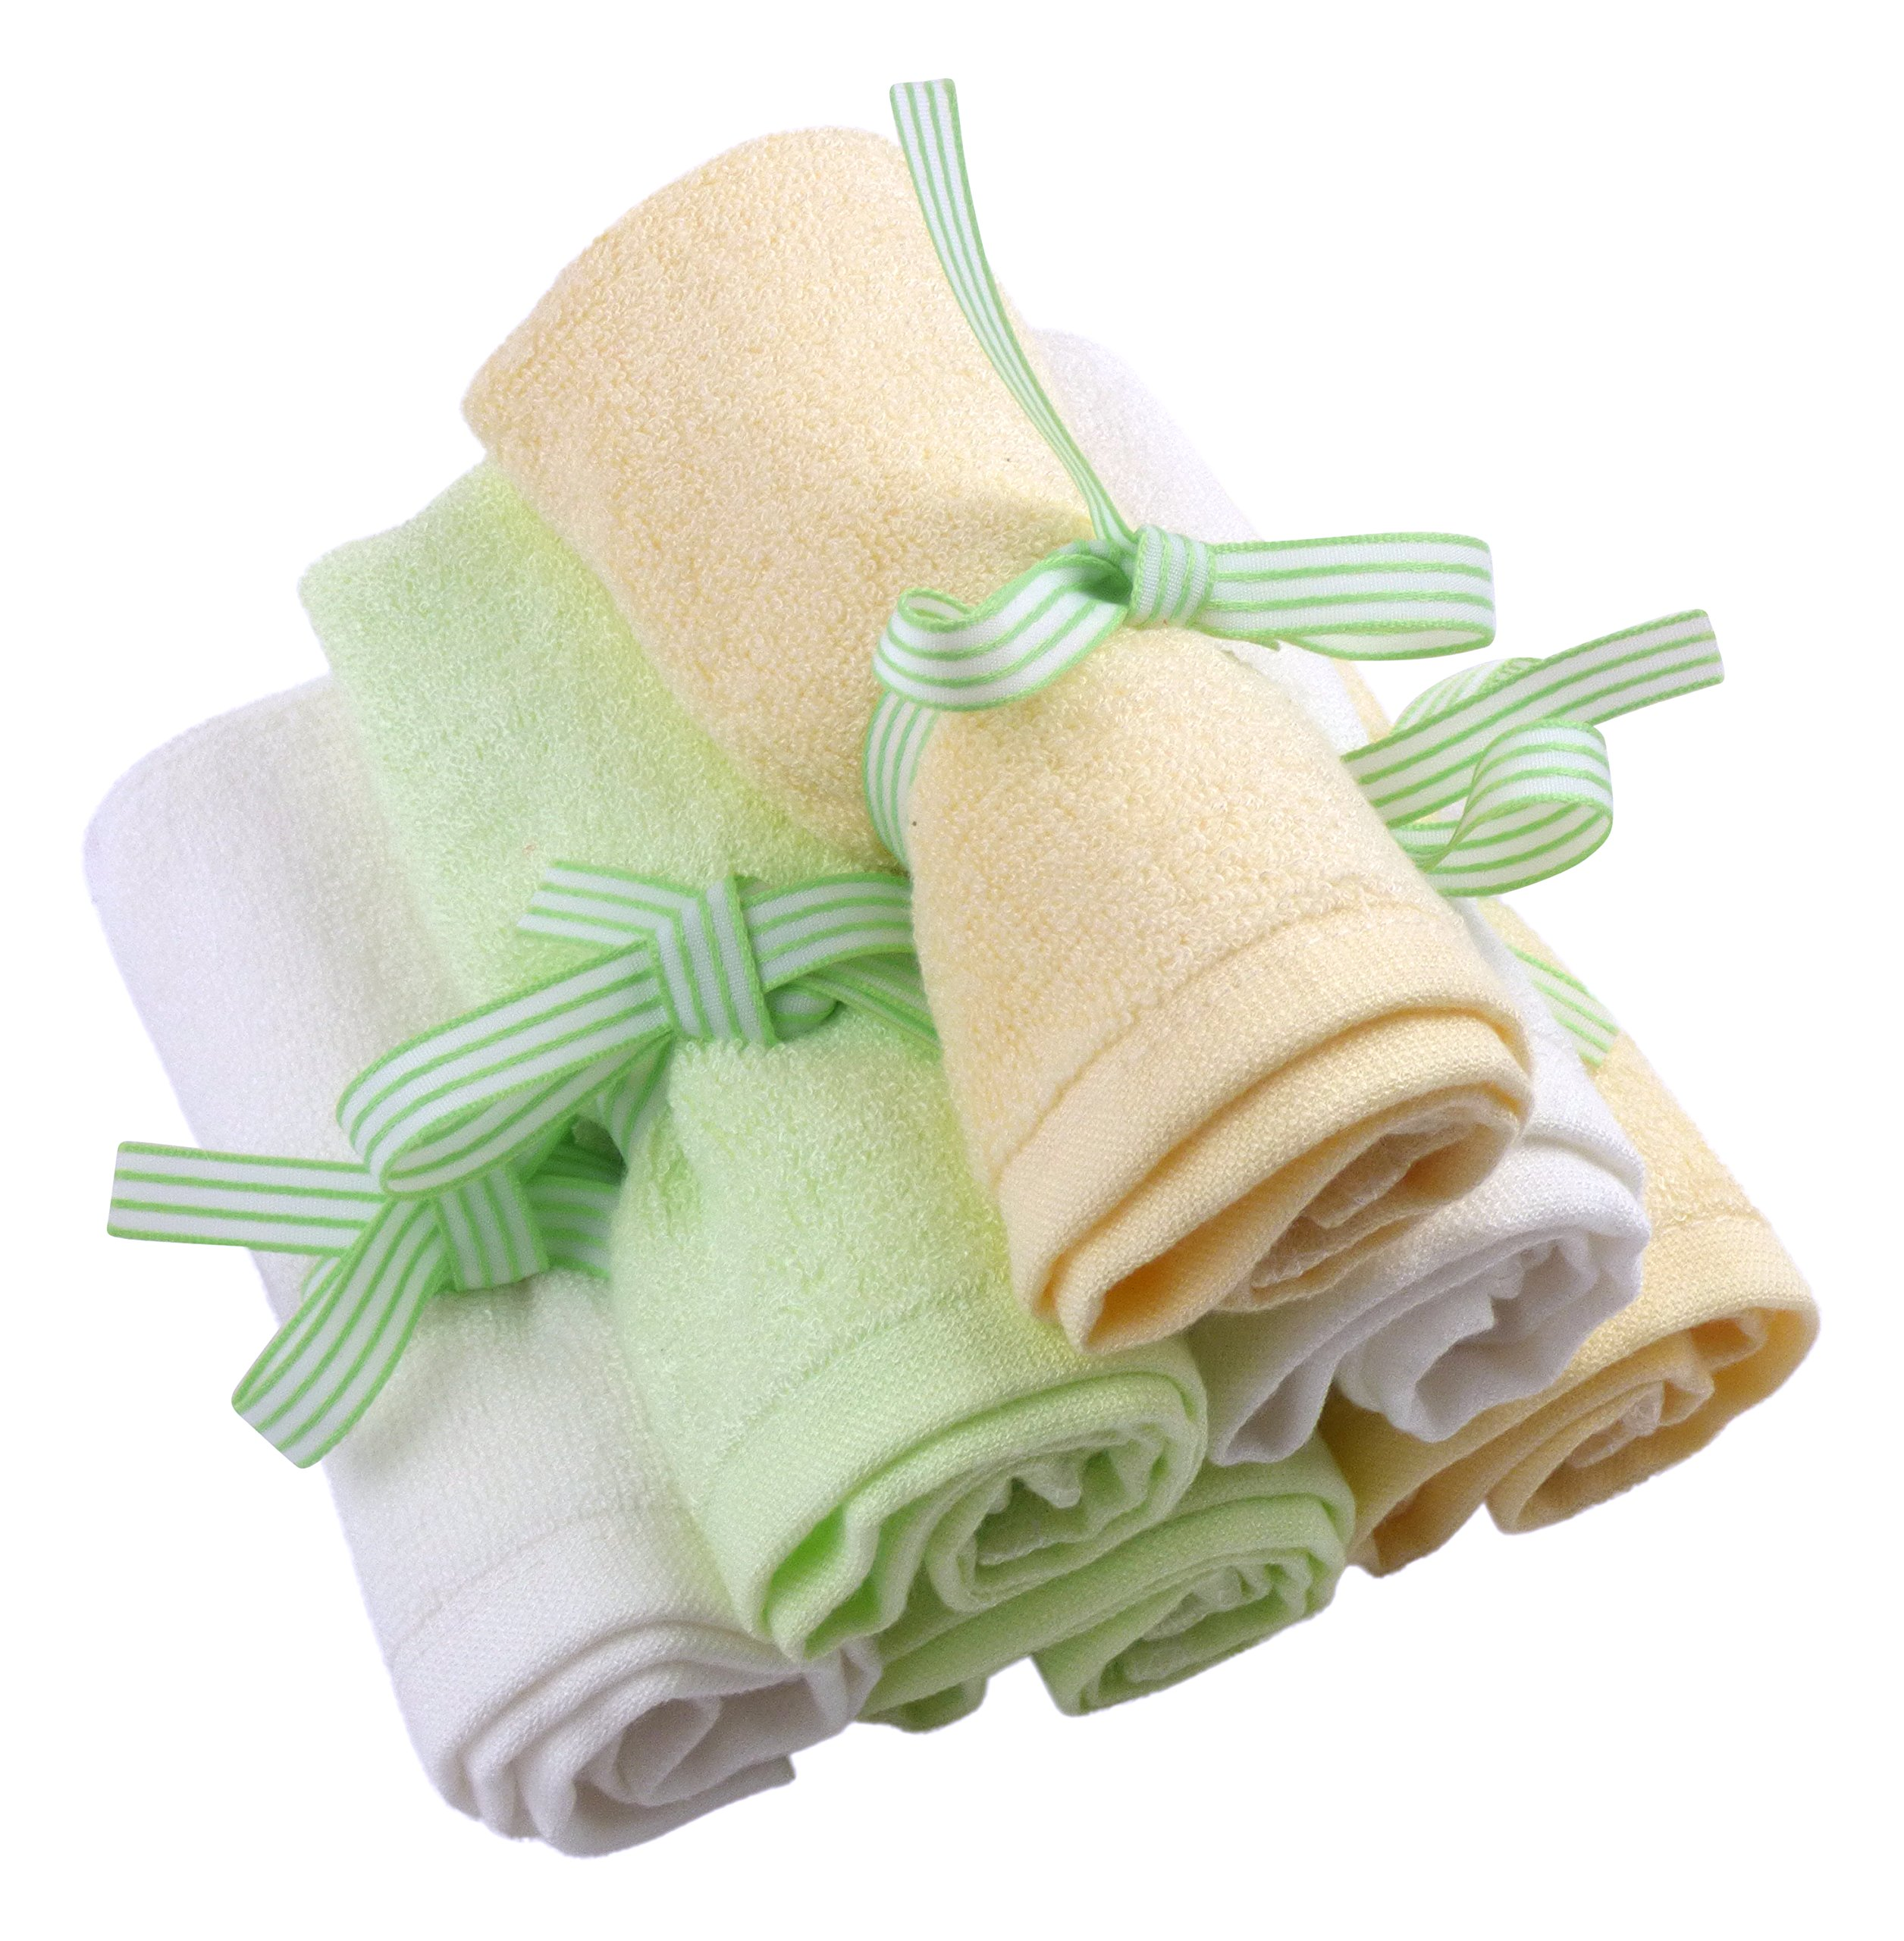 Le Petit Bamboo Baby Washcloths - Premium, Natural Organic Bamboo Wash Cloths - Softest Reusable Wipes - 6 Multicolor Towels by Le Petit Bamboo